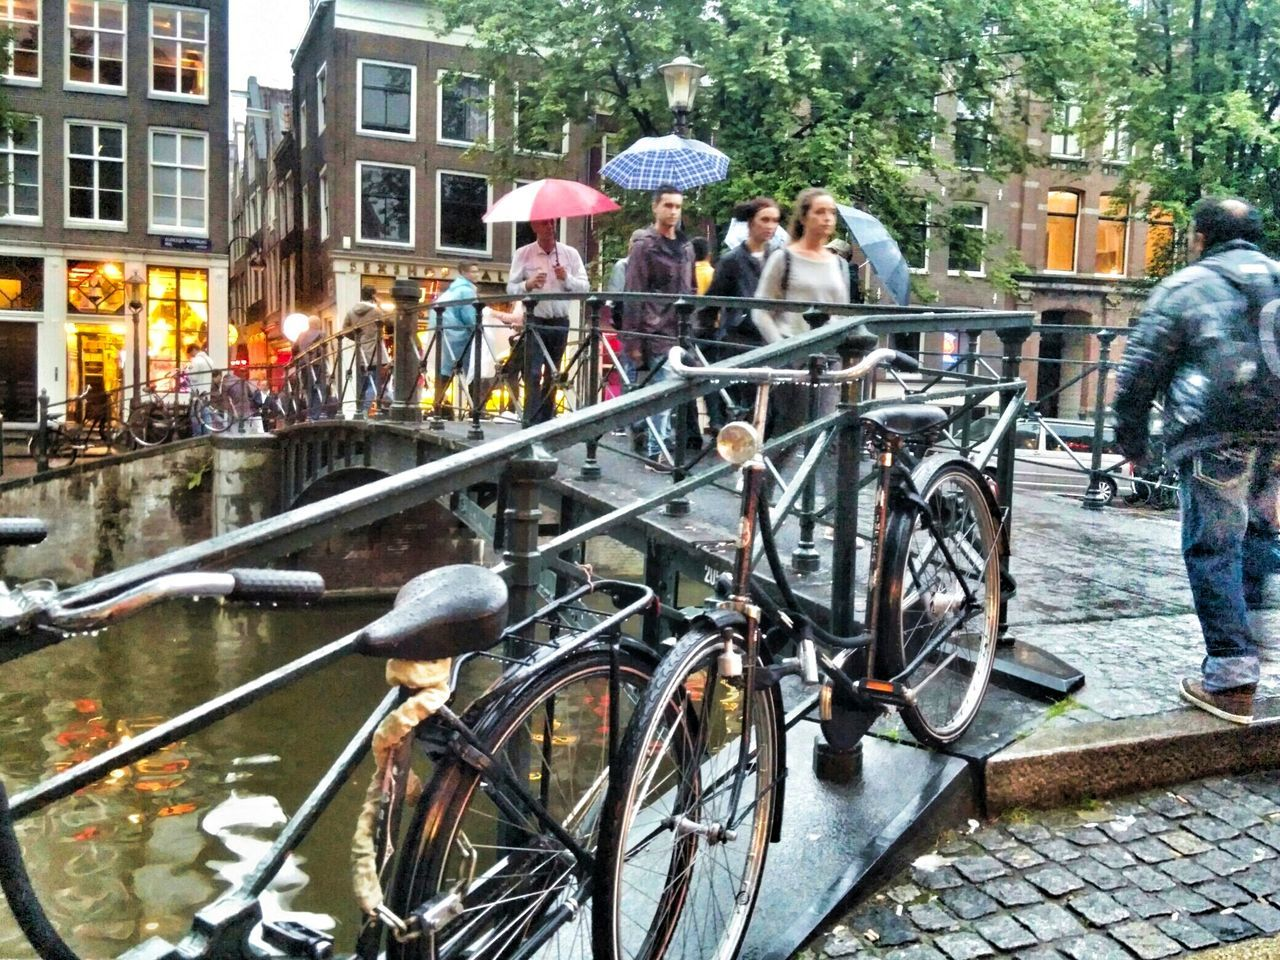 bicycle, city, outdoors, city life, cycling, building exterior, women, day, people, men, adult, group of people, transportation, full length, built structure, architecture, adults only, tree, lifestyles, standing, real people, togetherness, large group of people, young women, young adult